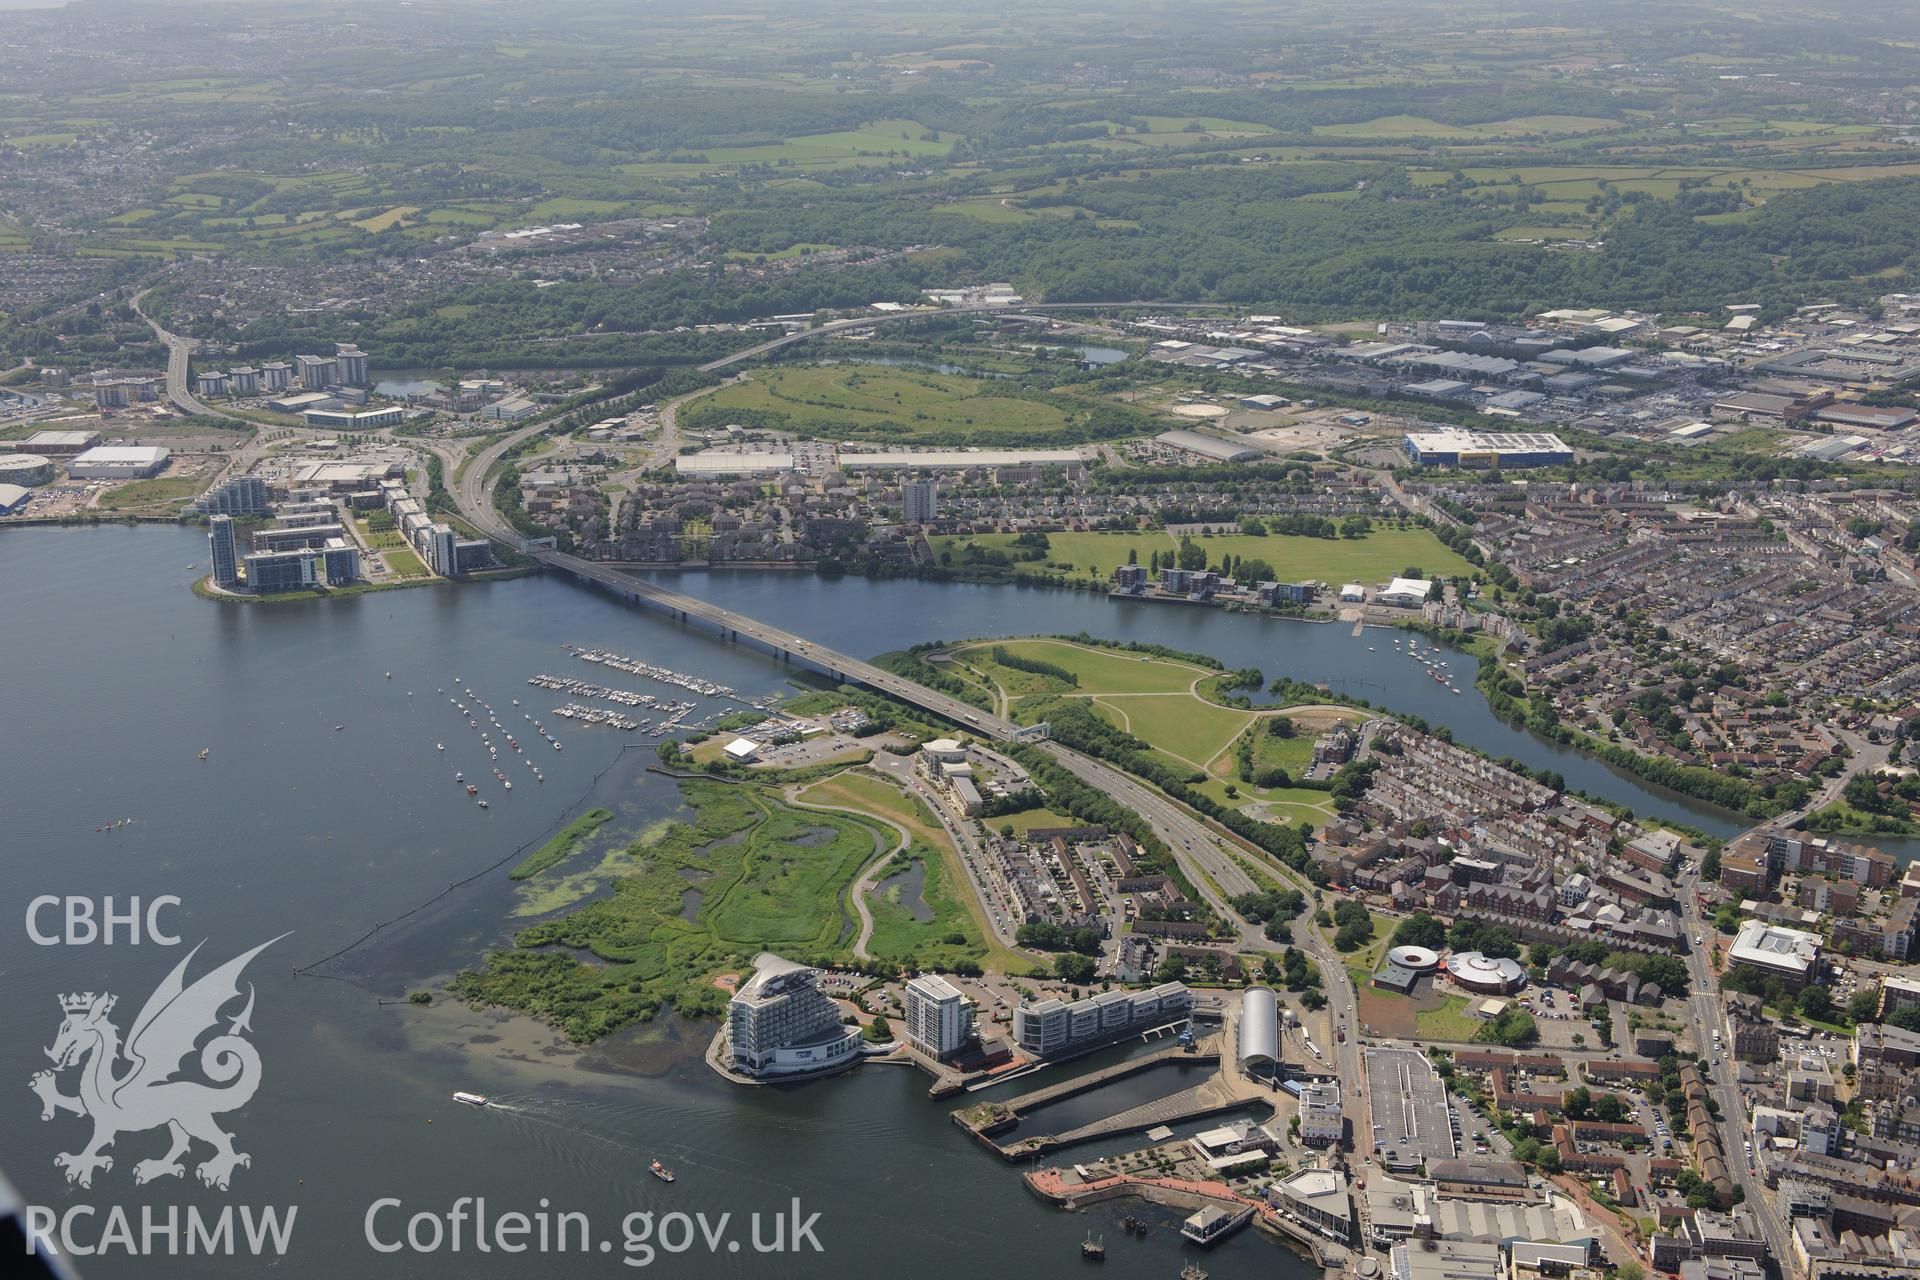 Techniquest; the St. David's Hotel; Hamadryad Park and the Lagoons and Wetlands Nature Reserve, Cardiff Bay. Oblique aerial photograph taken during the Royal Commission's programme of archaeological aerial reconnaissance by Toby Driver on 29th June 2015.